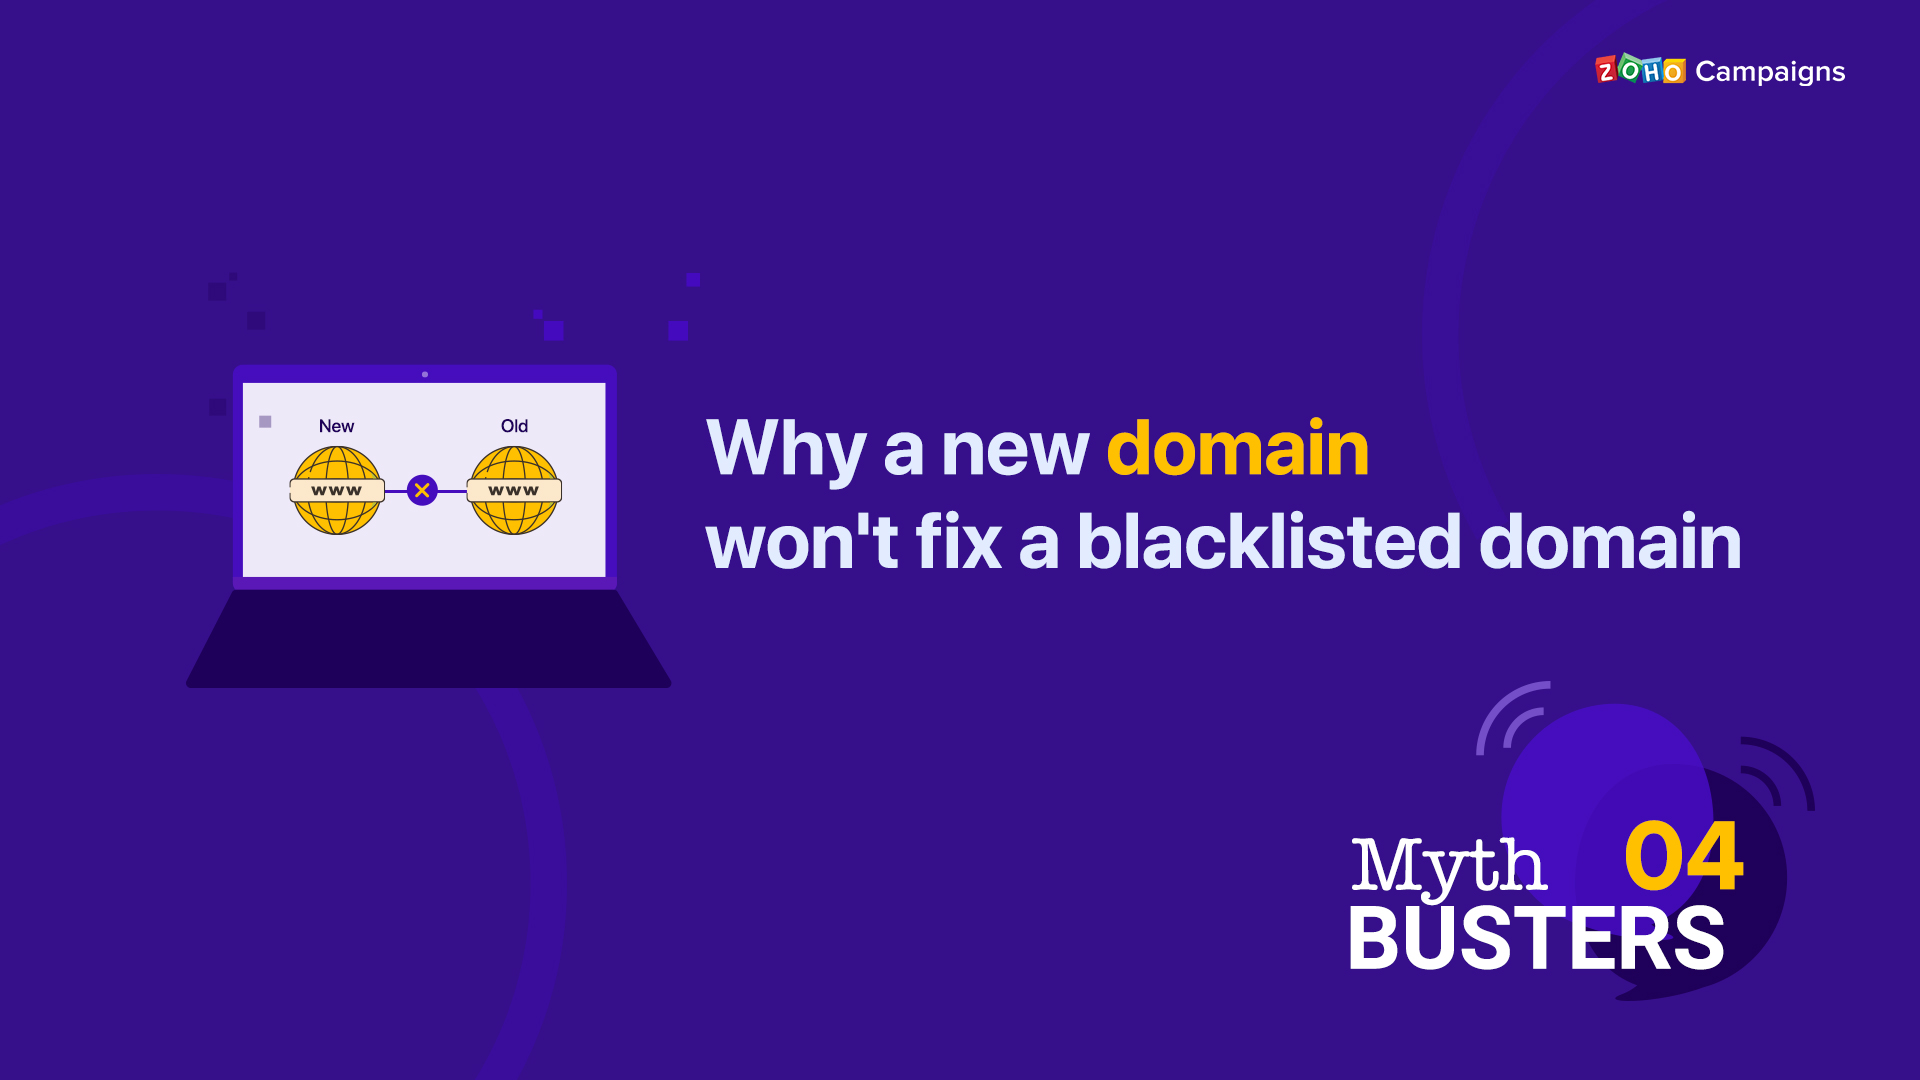 Why a new domain won't fix a blacklisted domain